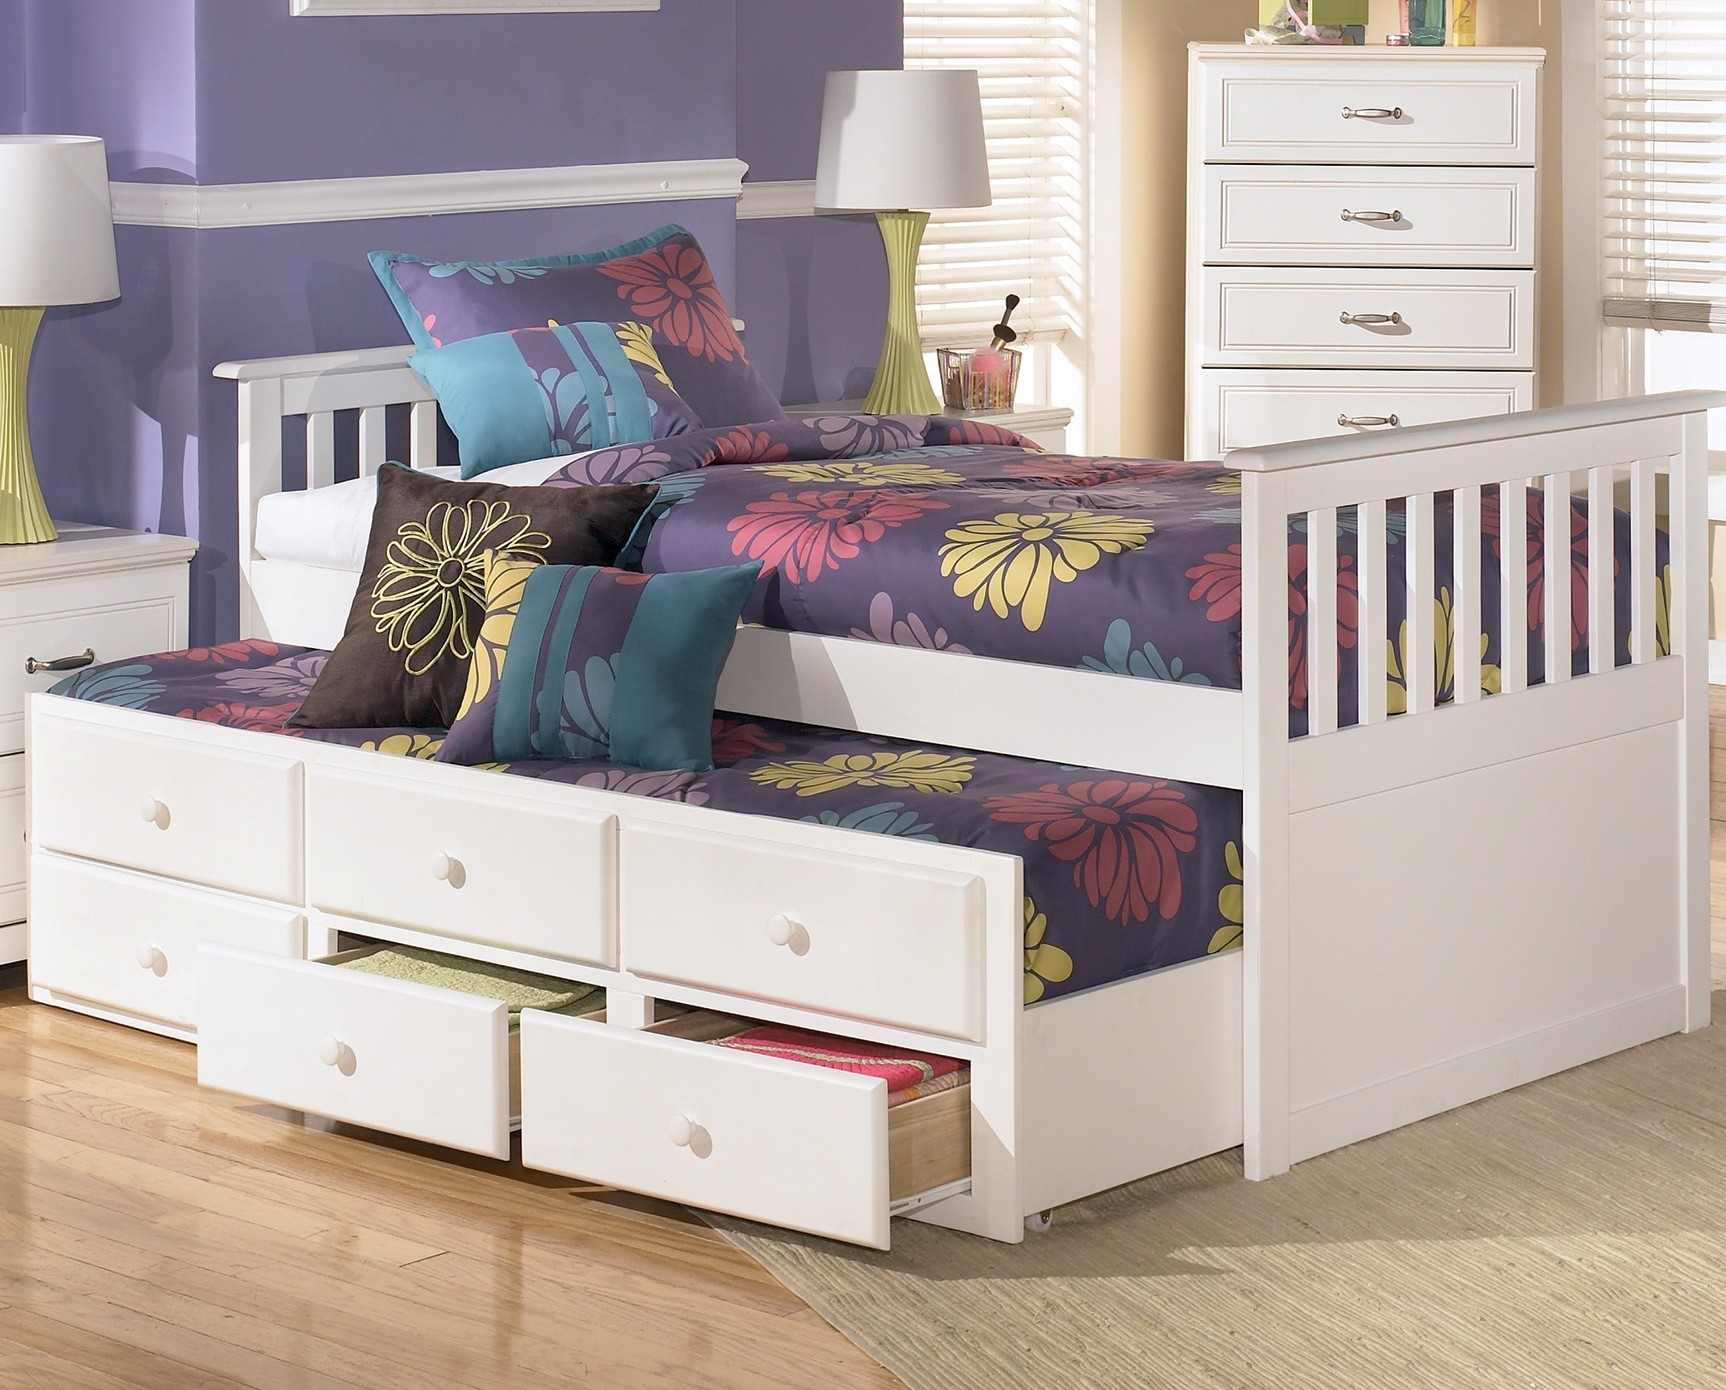 Details About White 3 Piece Storage Drawers Twin Bed Box: Lulu Twin Storage Bed With Super Trundle From Ashley (B102